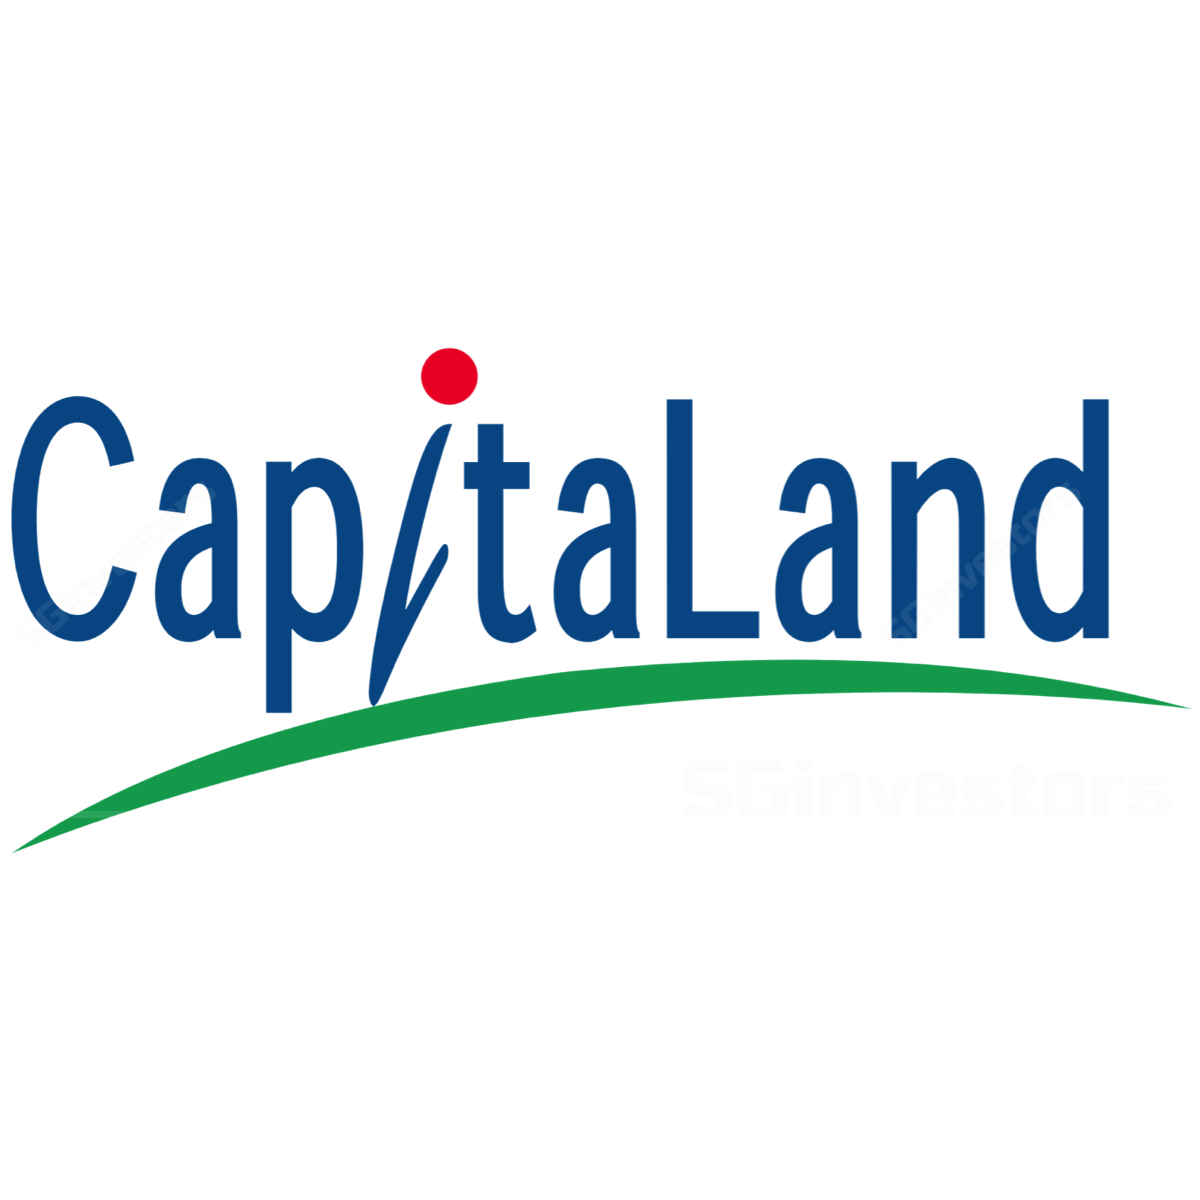 Capitaland - DBS Vickers 2017-01-04: Strong earnings quality